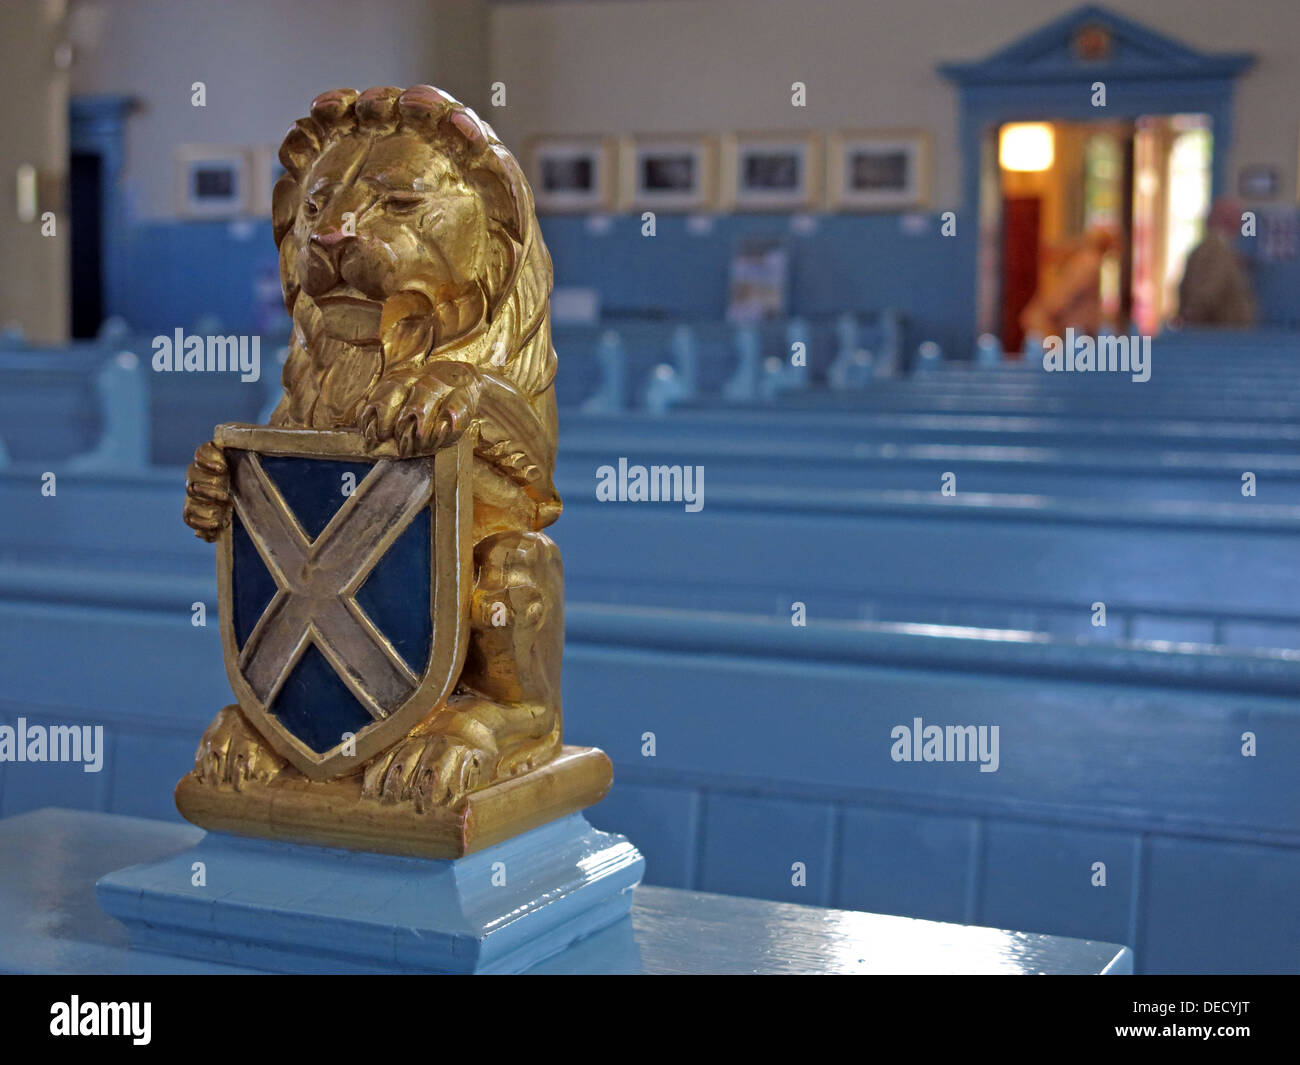 Scots lion holding a Saltaire shield ready for independence from the Royal Mile Church of Canongate Kirk - Stock Image